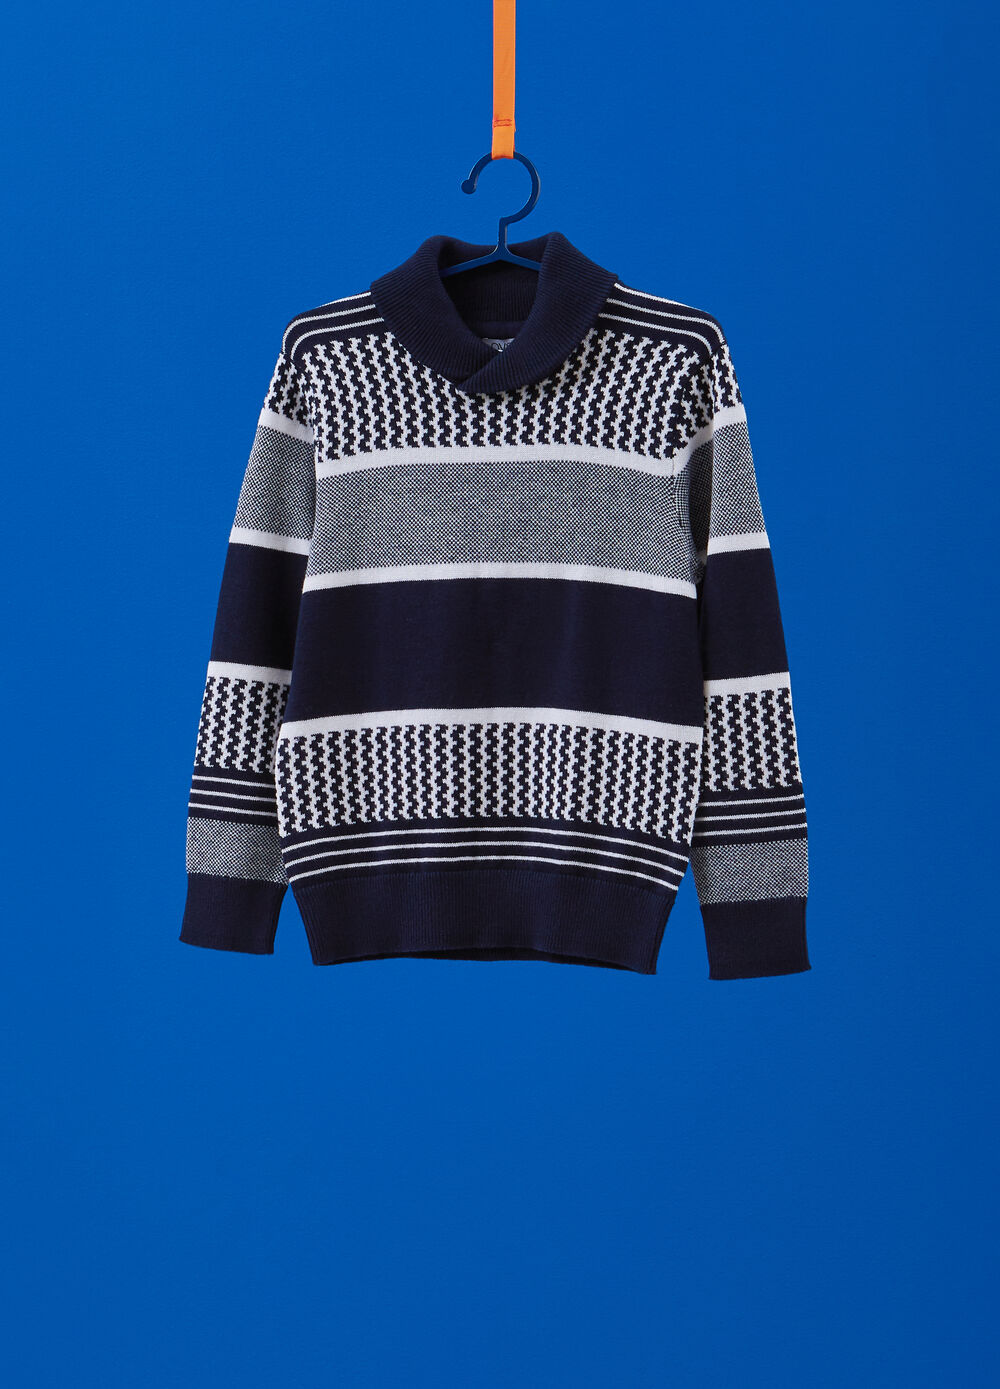 100% cotton knitted pullover with pattern